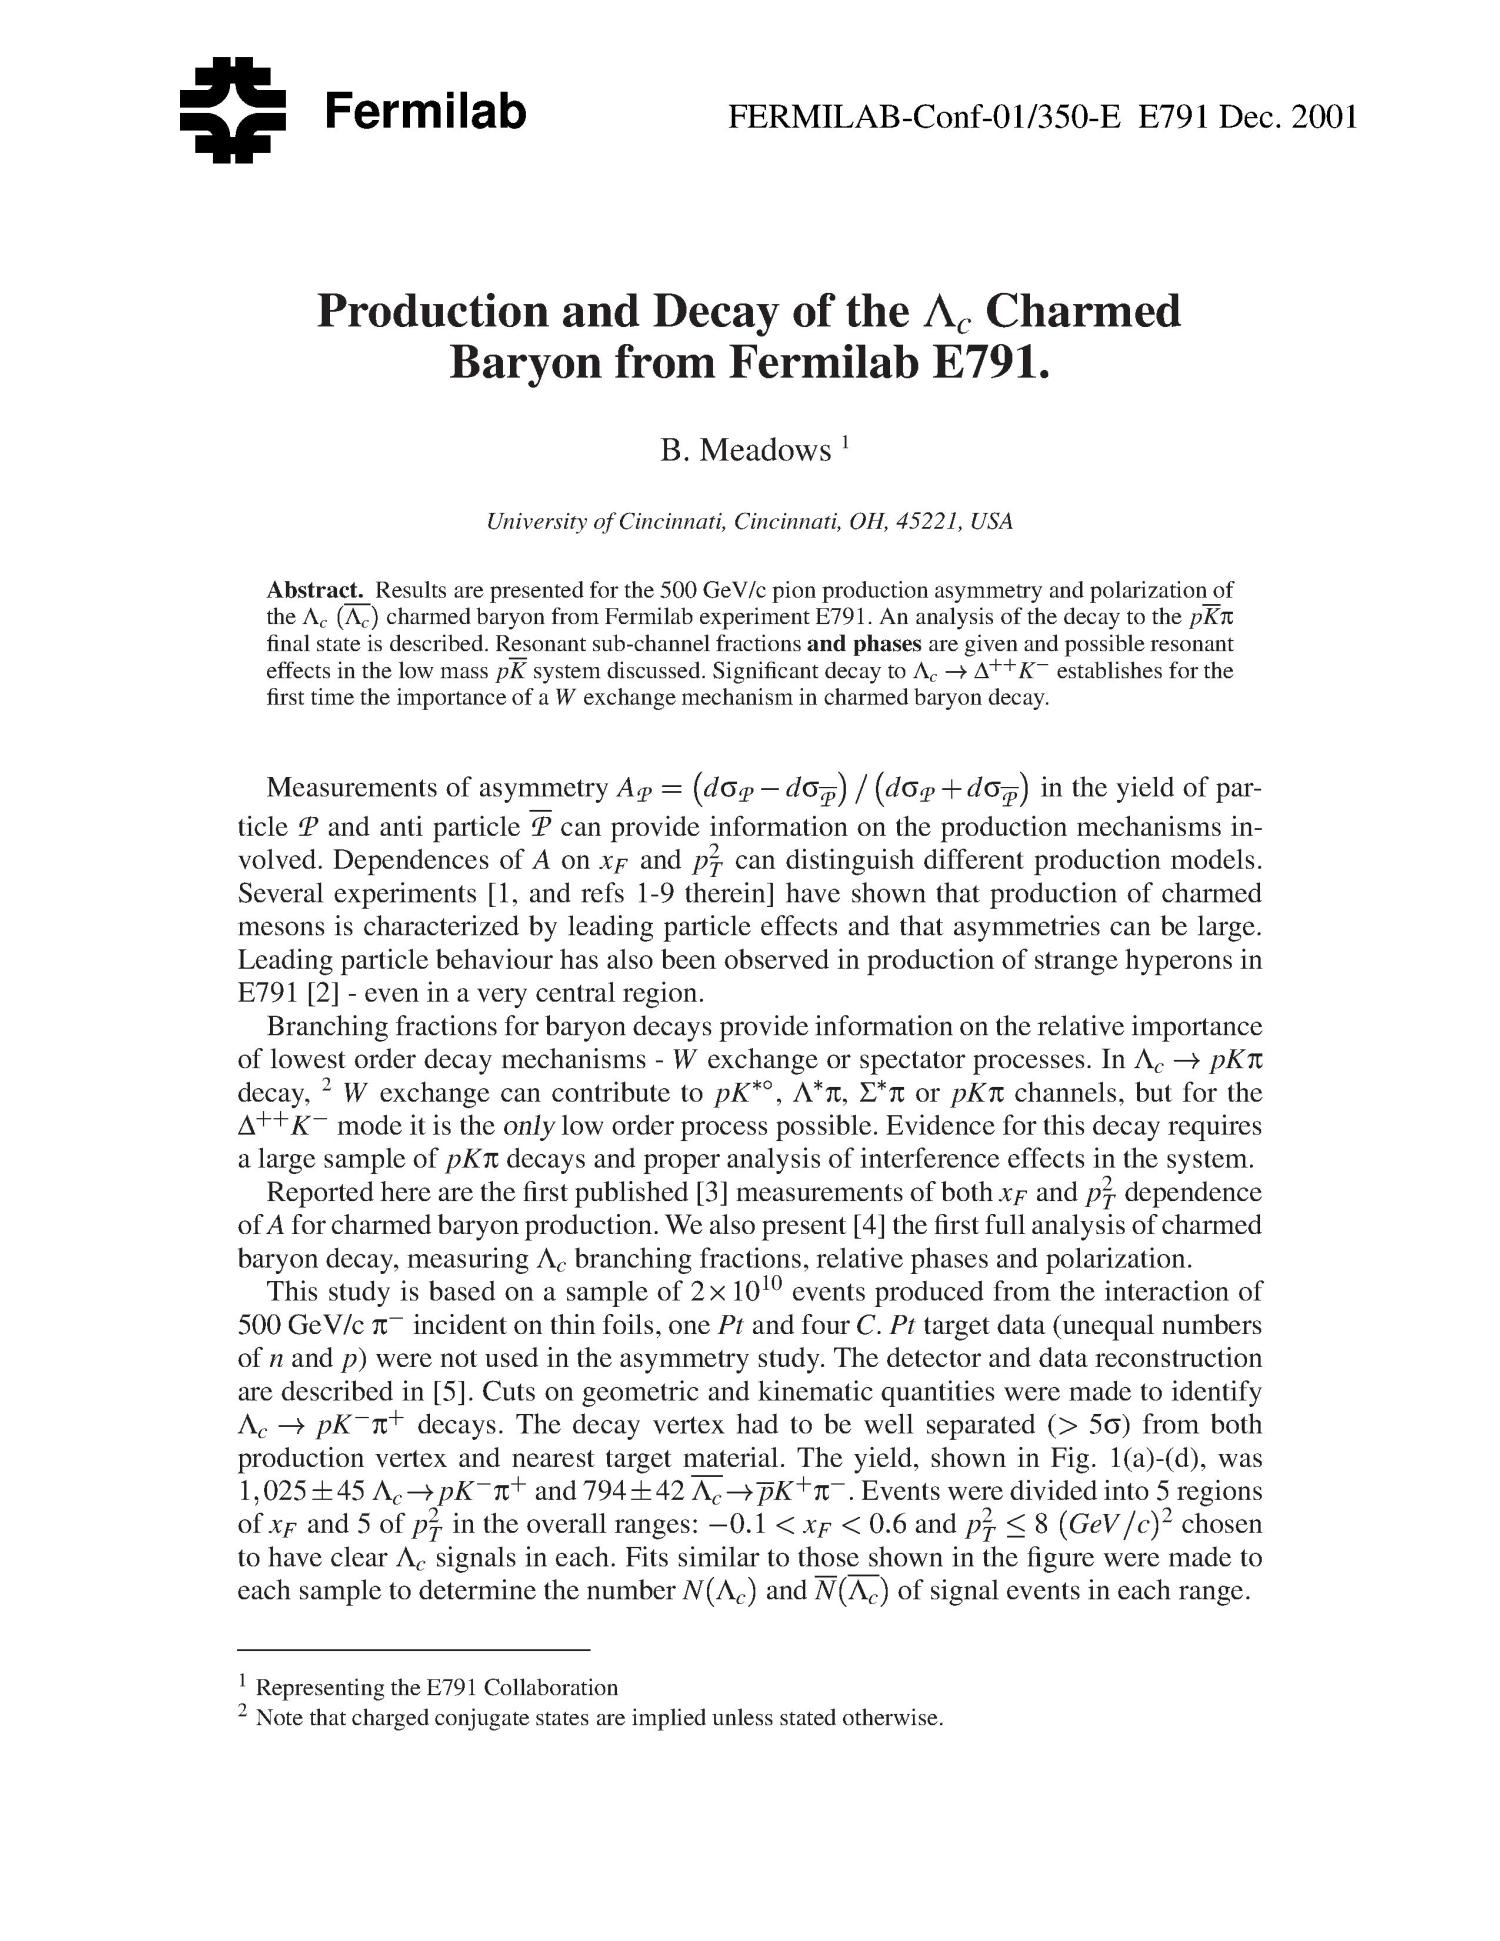 Production and decay of the Lambda c charmed baryon from Fermilab E791                                                                                                      [Sequence #]: 1 of 4